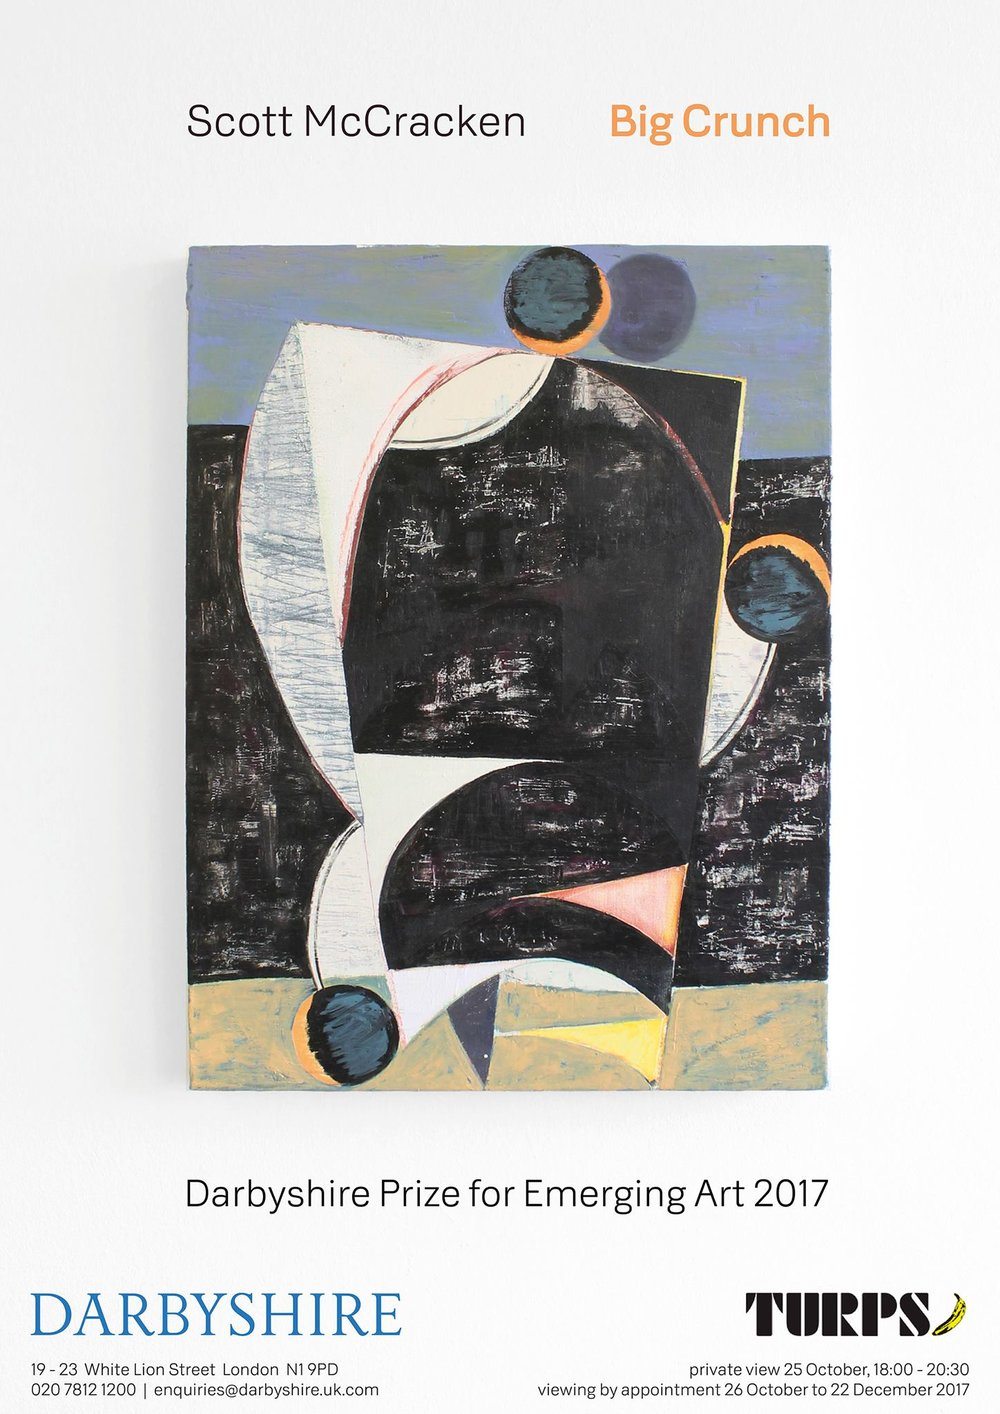 Darbyshire Prize for Emerging Art 2017